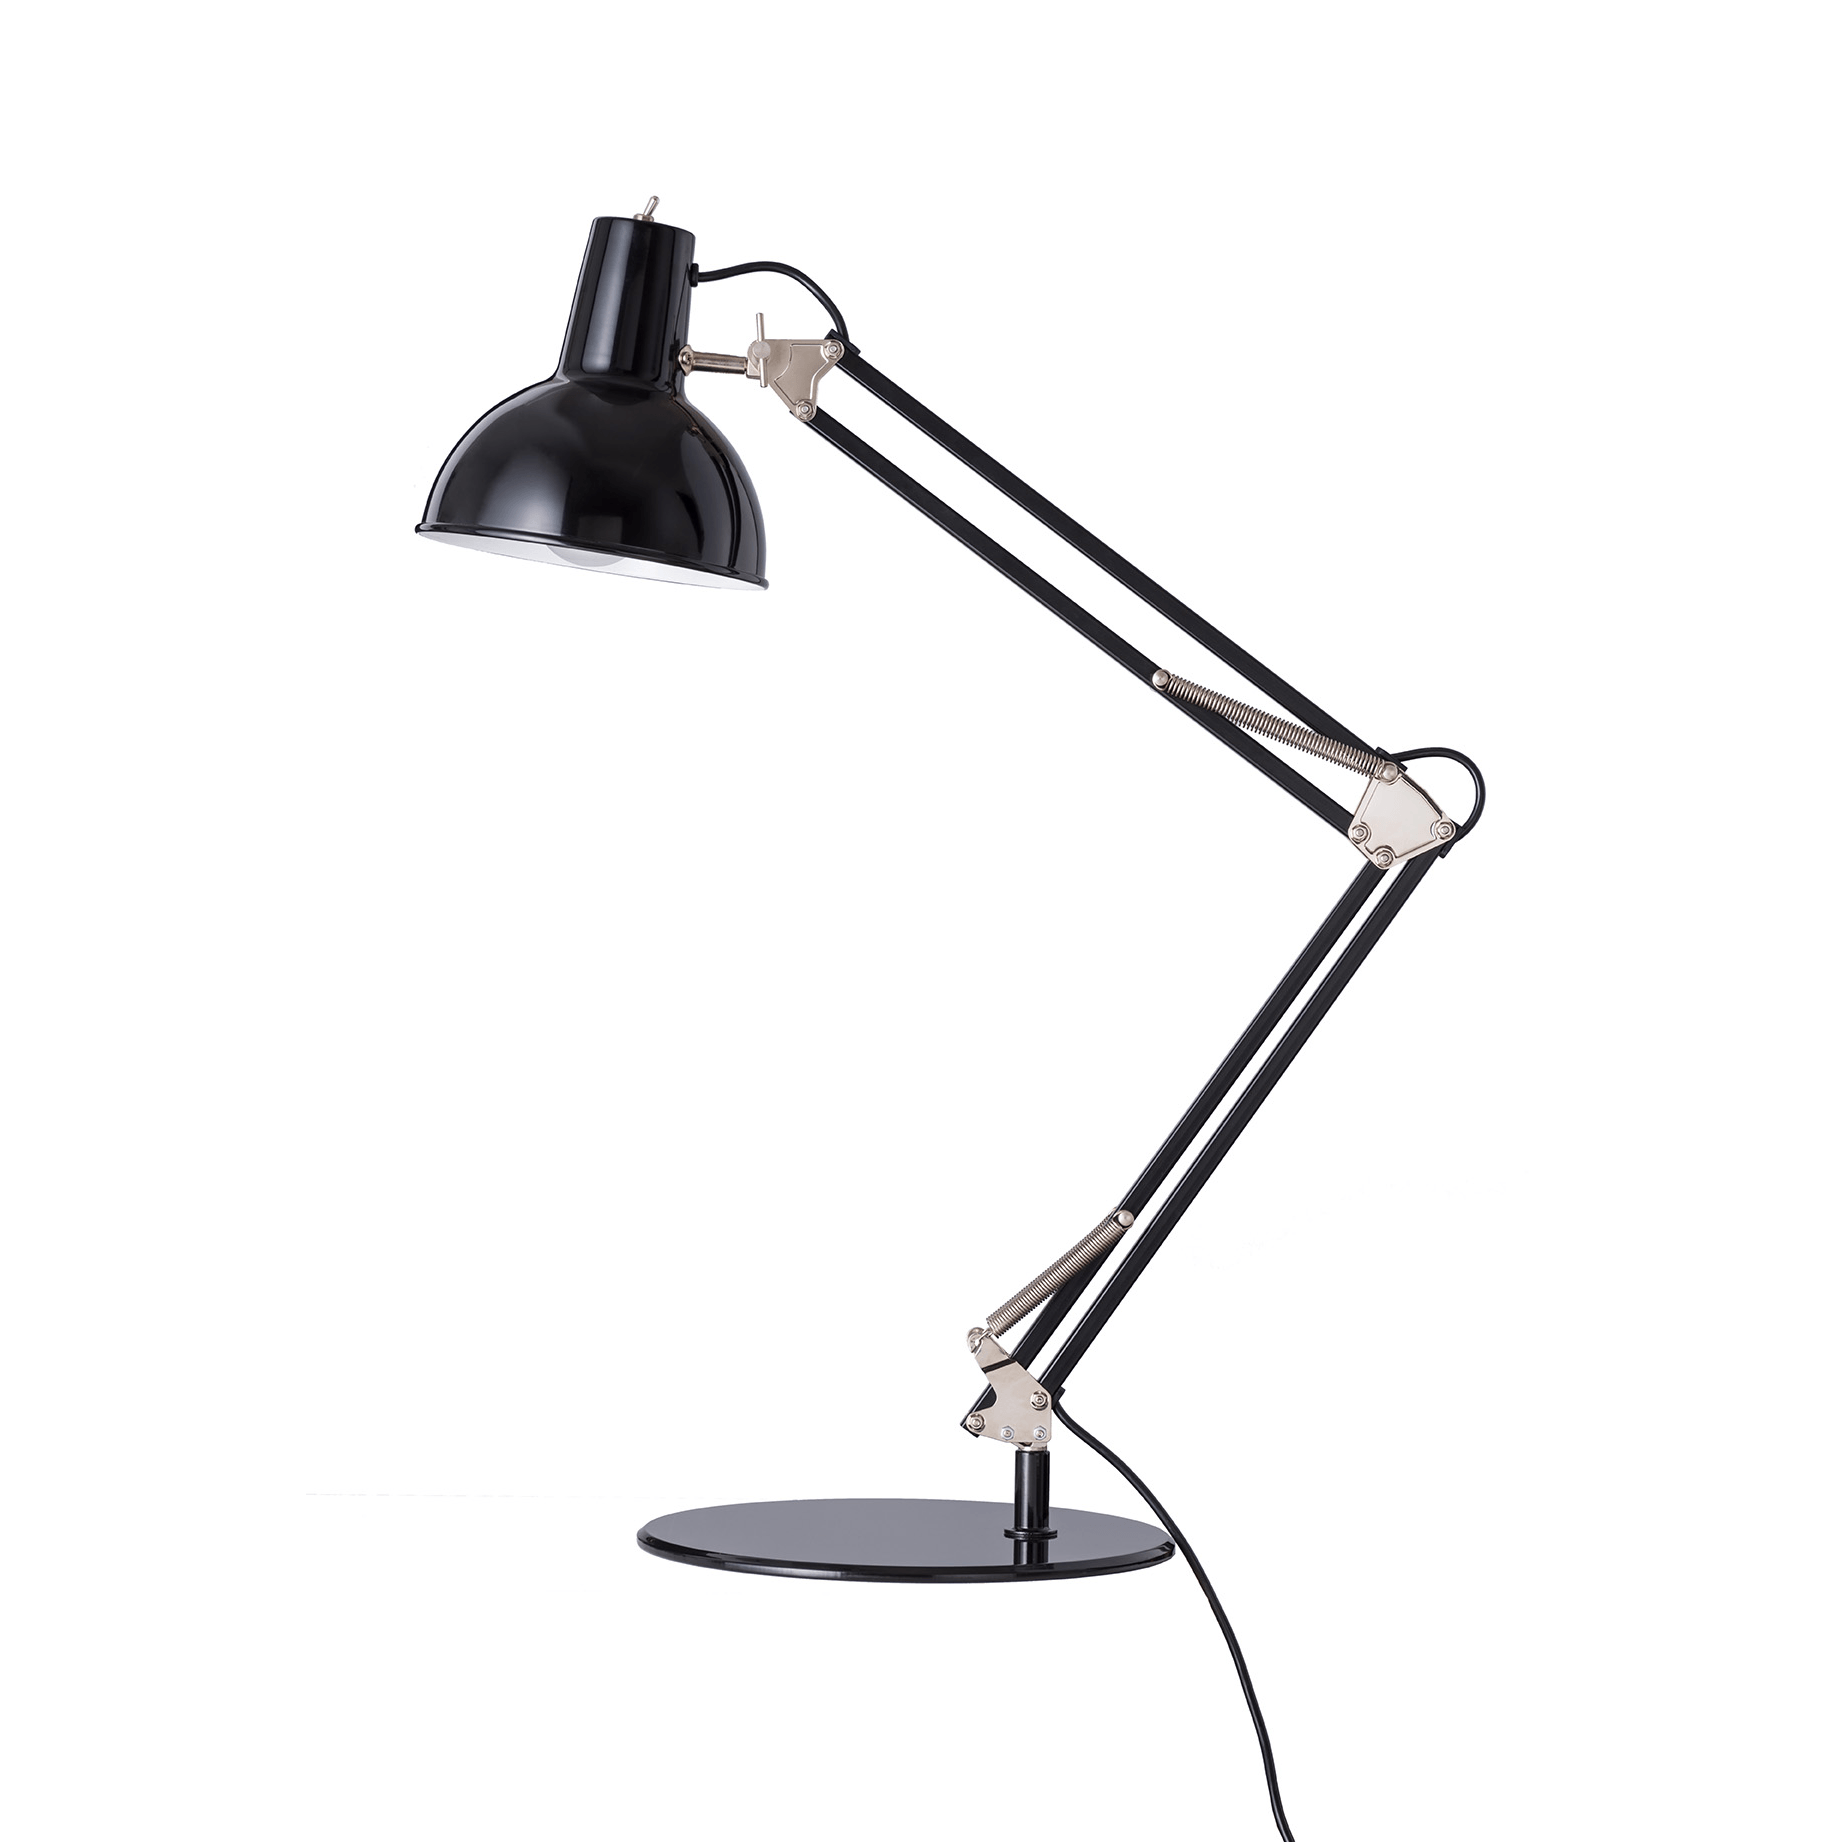 Midgard Spring Balanced Table Light Black